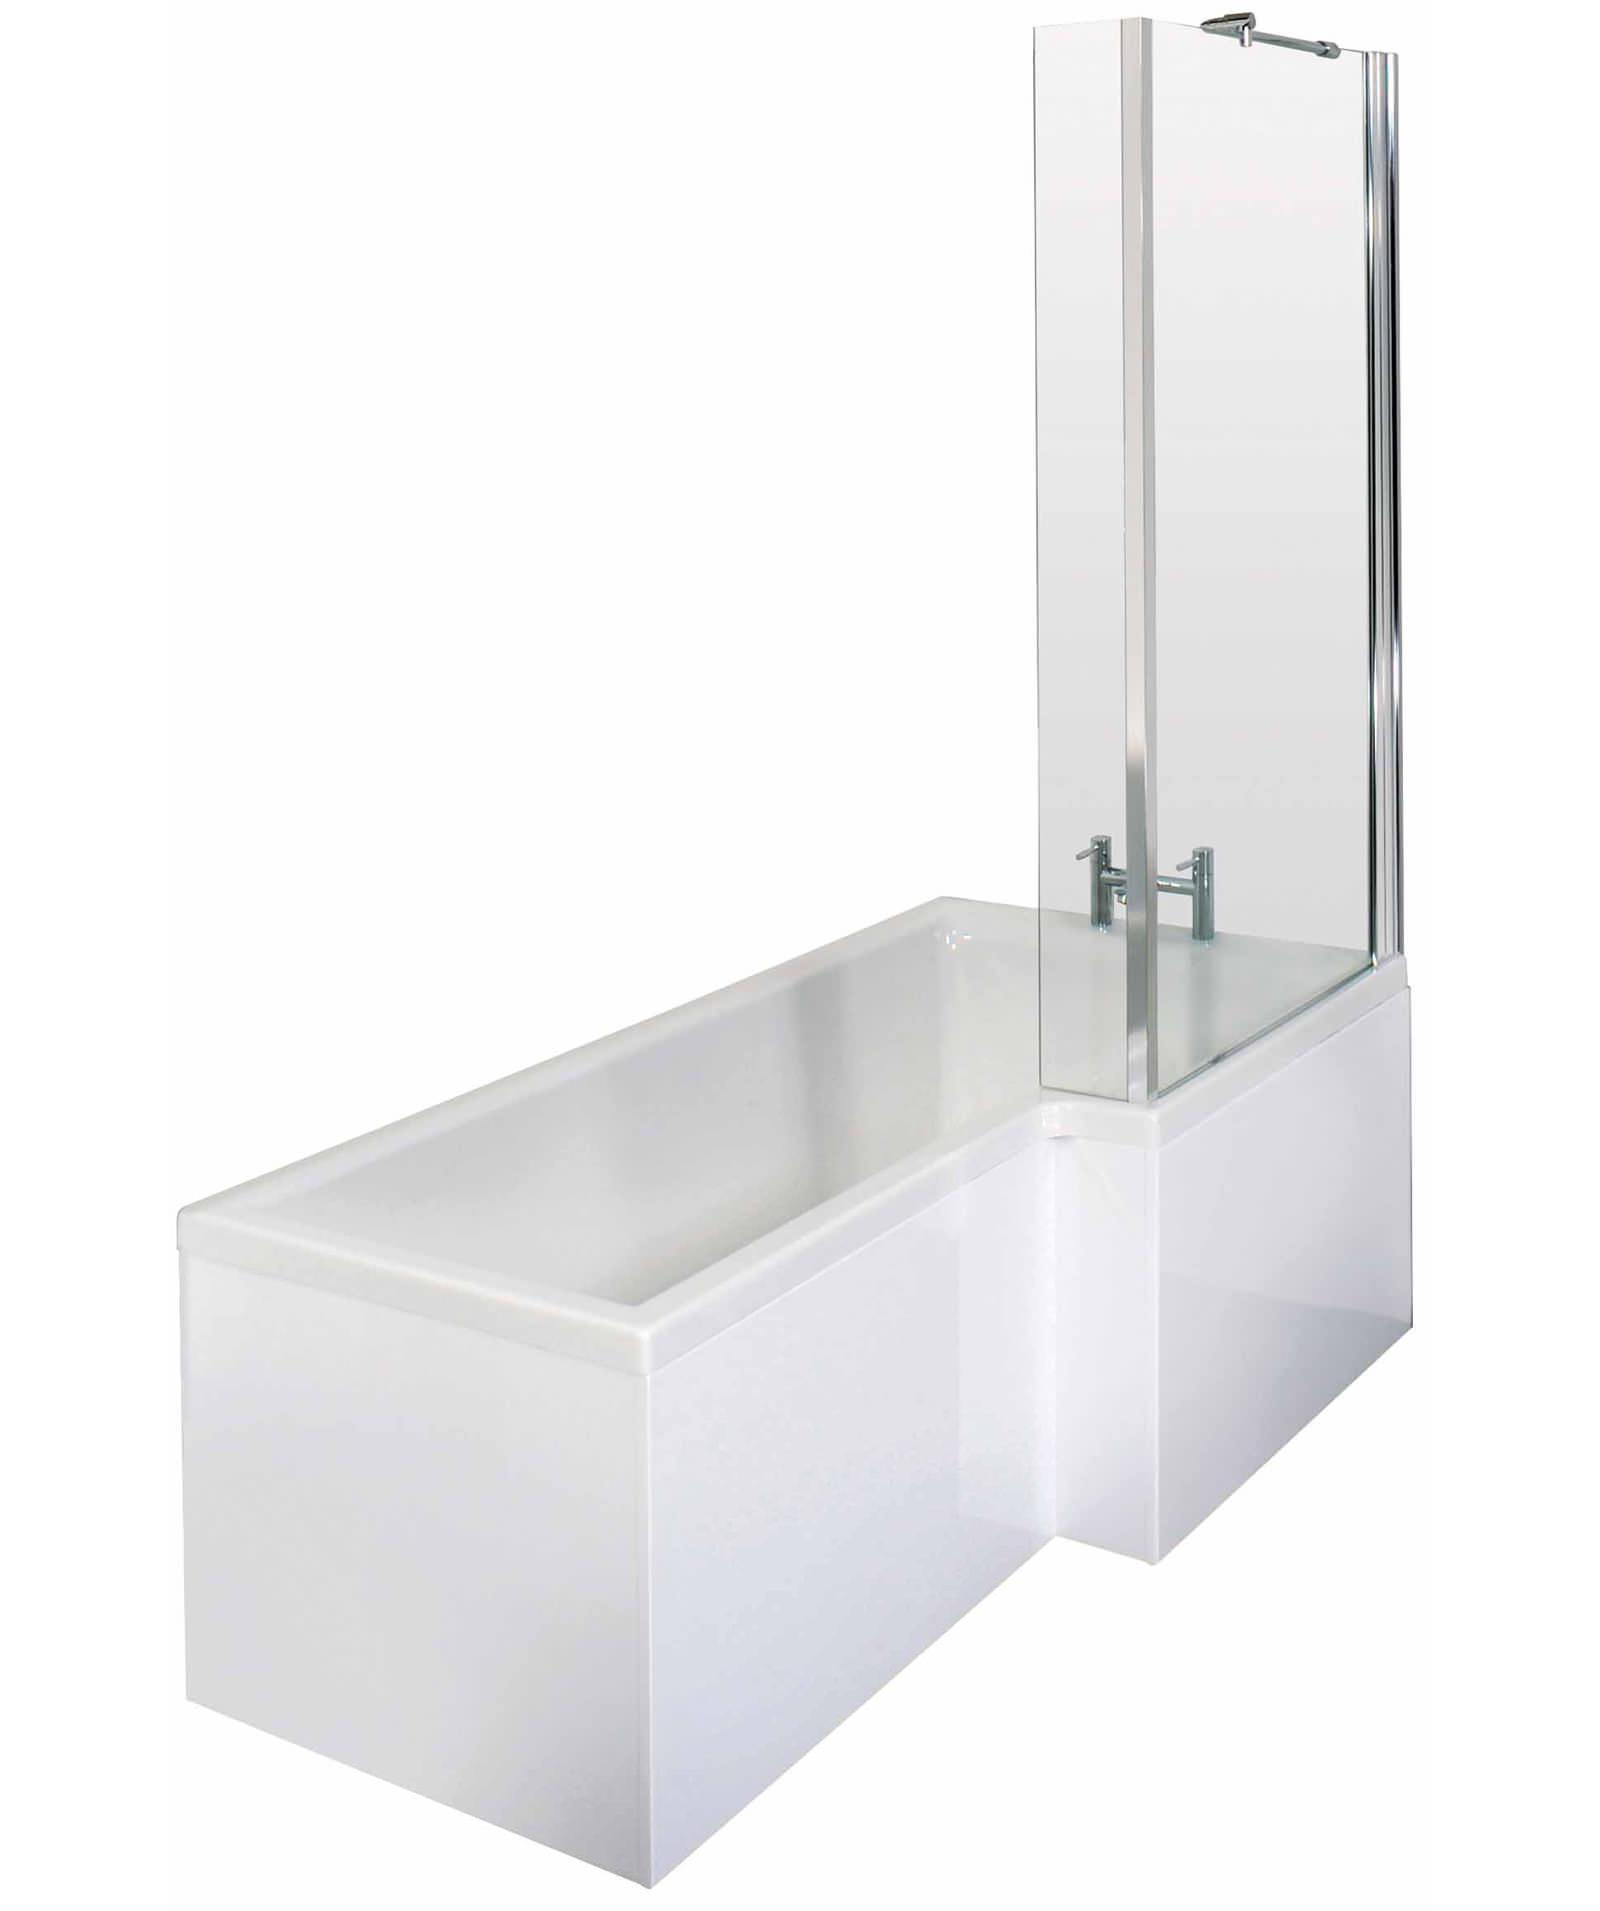 Lauren Square 1700 x 850mm Right Hand Acrylic Shower Bath Pack